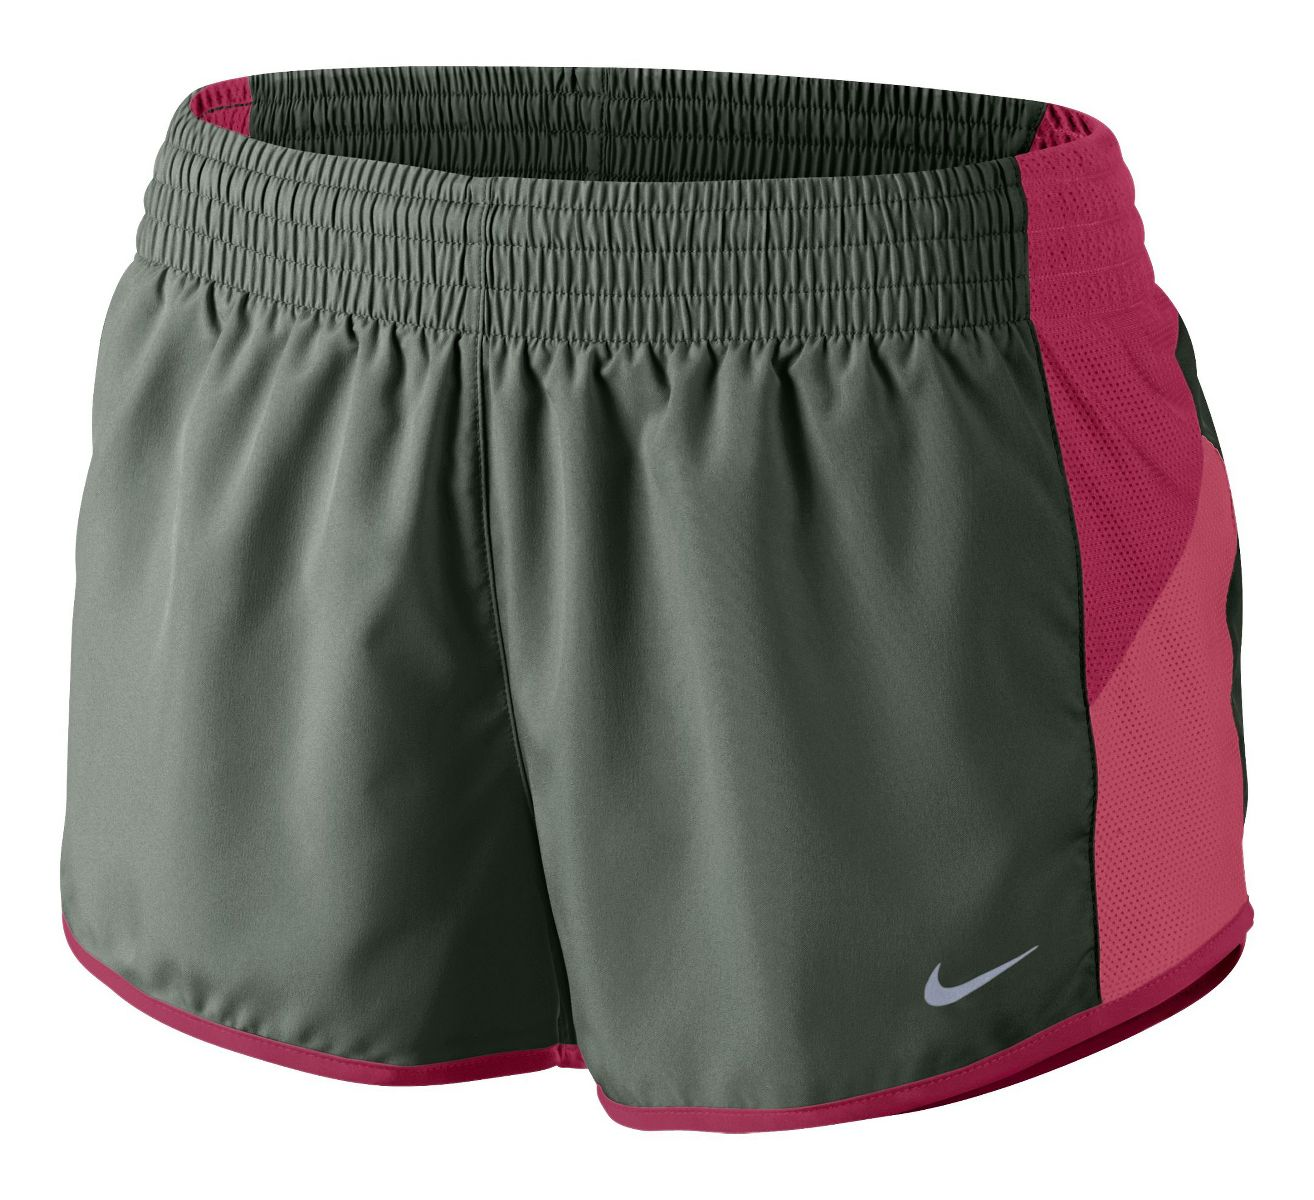 Nike womens running shorts with liner - Nike Womens Running Shorts With Liner 30